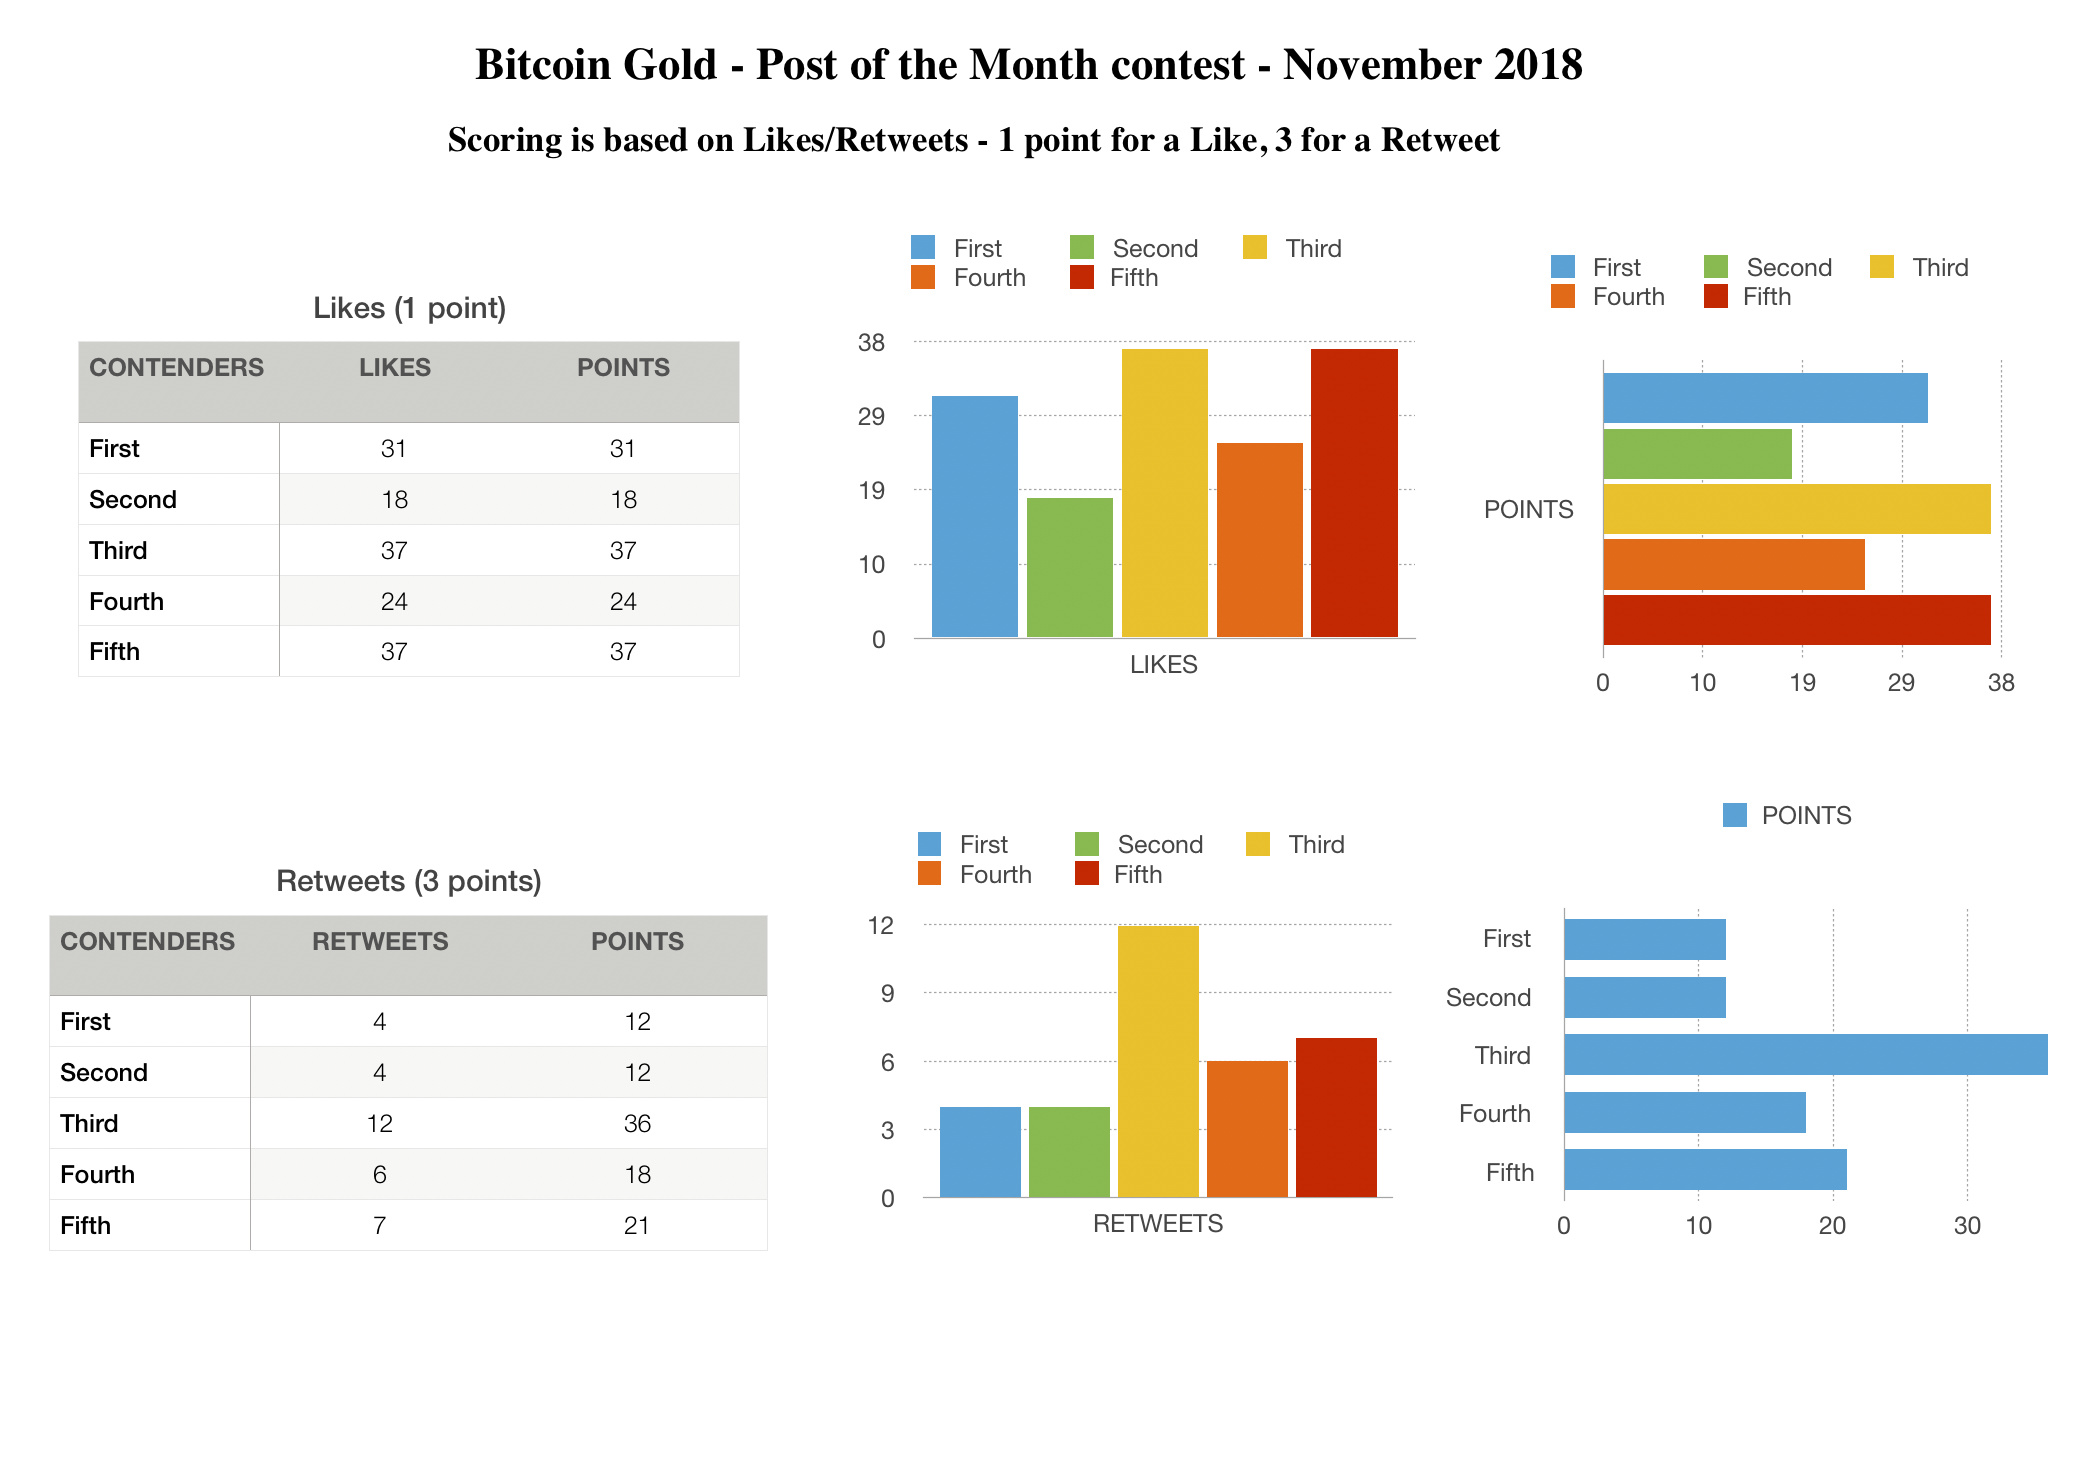 Bitcoin%20Gold%20-%20Post%20of%20the%20Month%20contest%20stats-%20November%202018